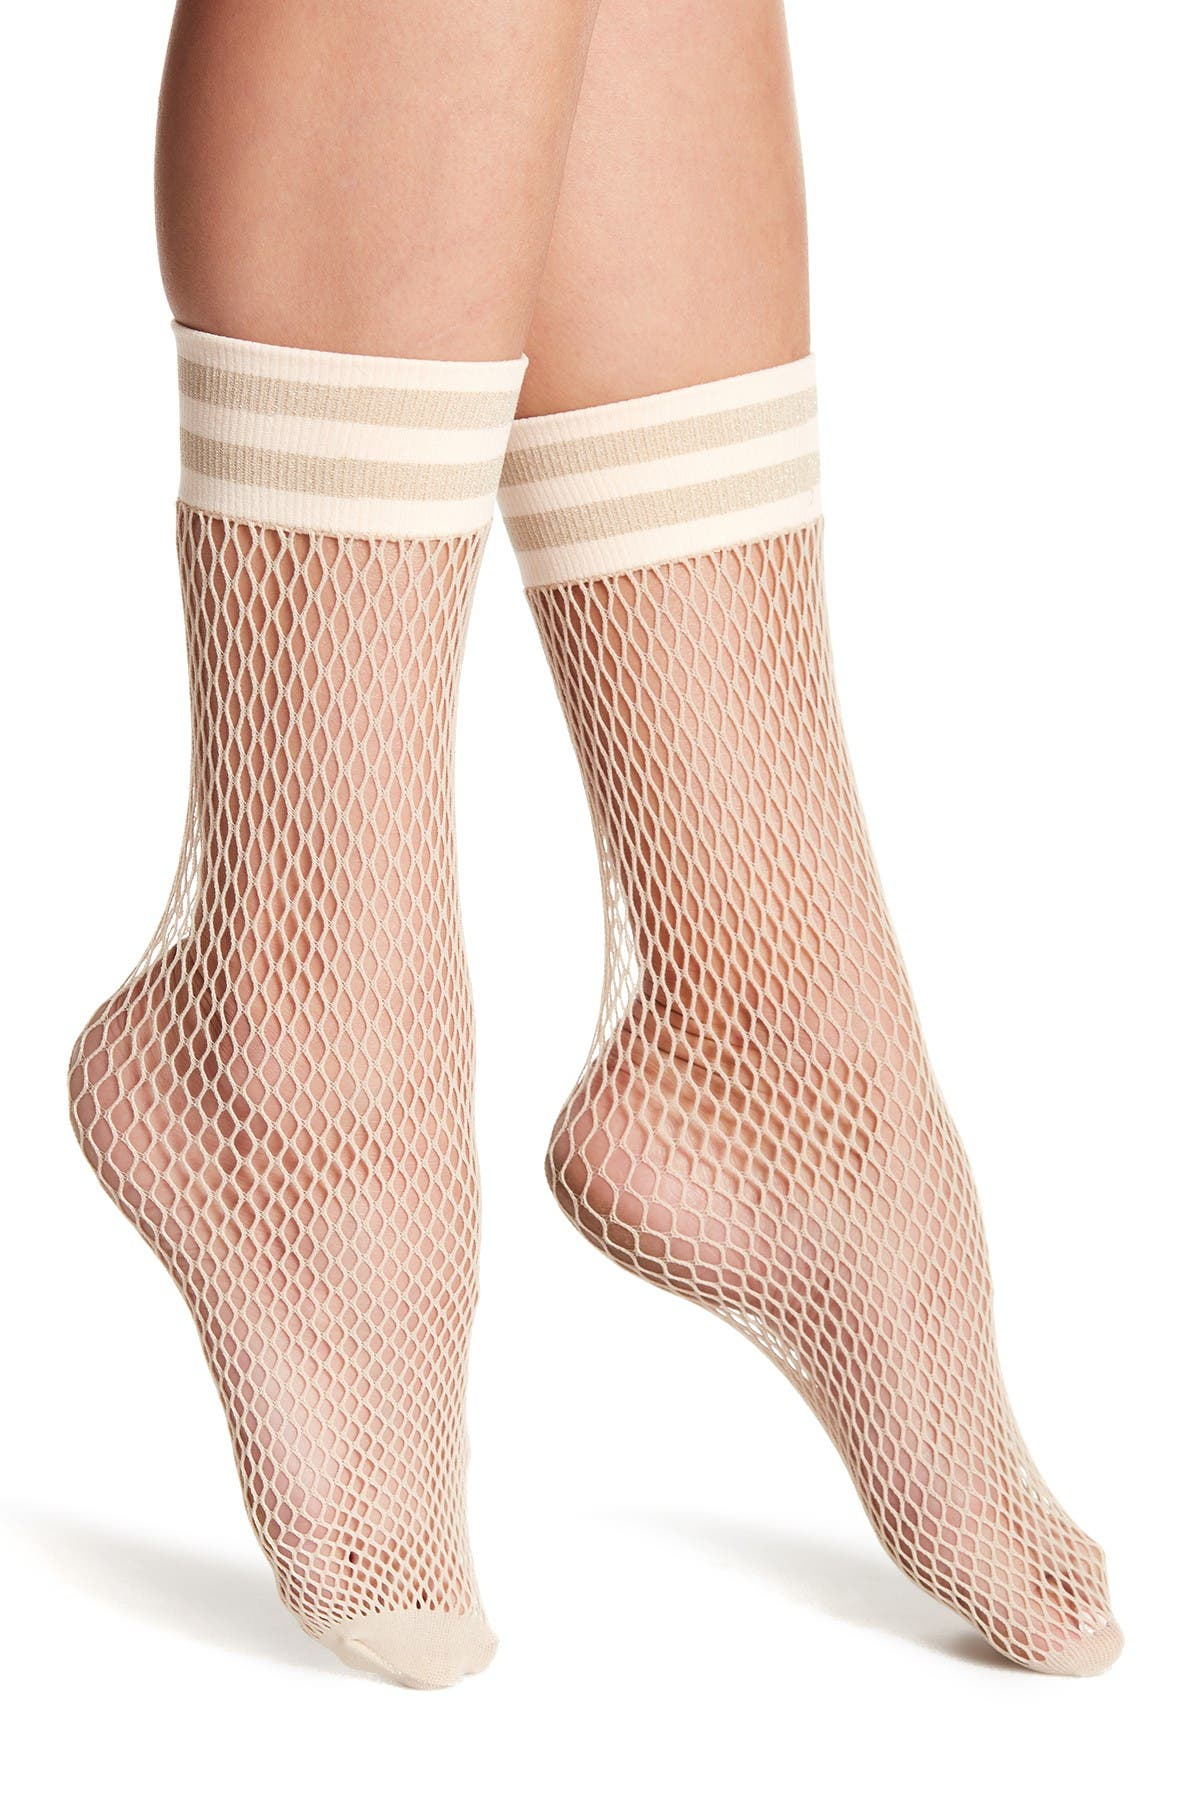 Image of Free People Riot Fishnet Crew Socks